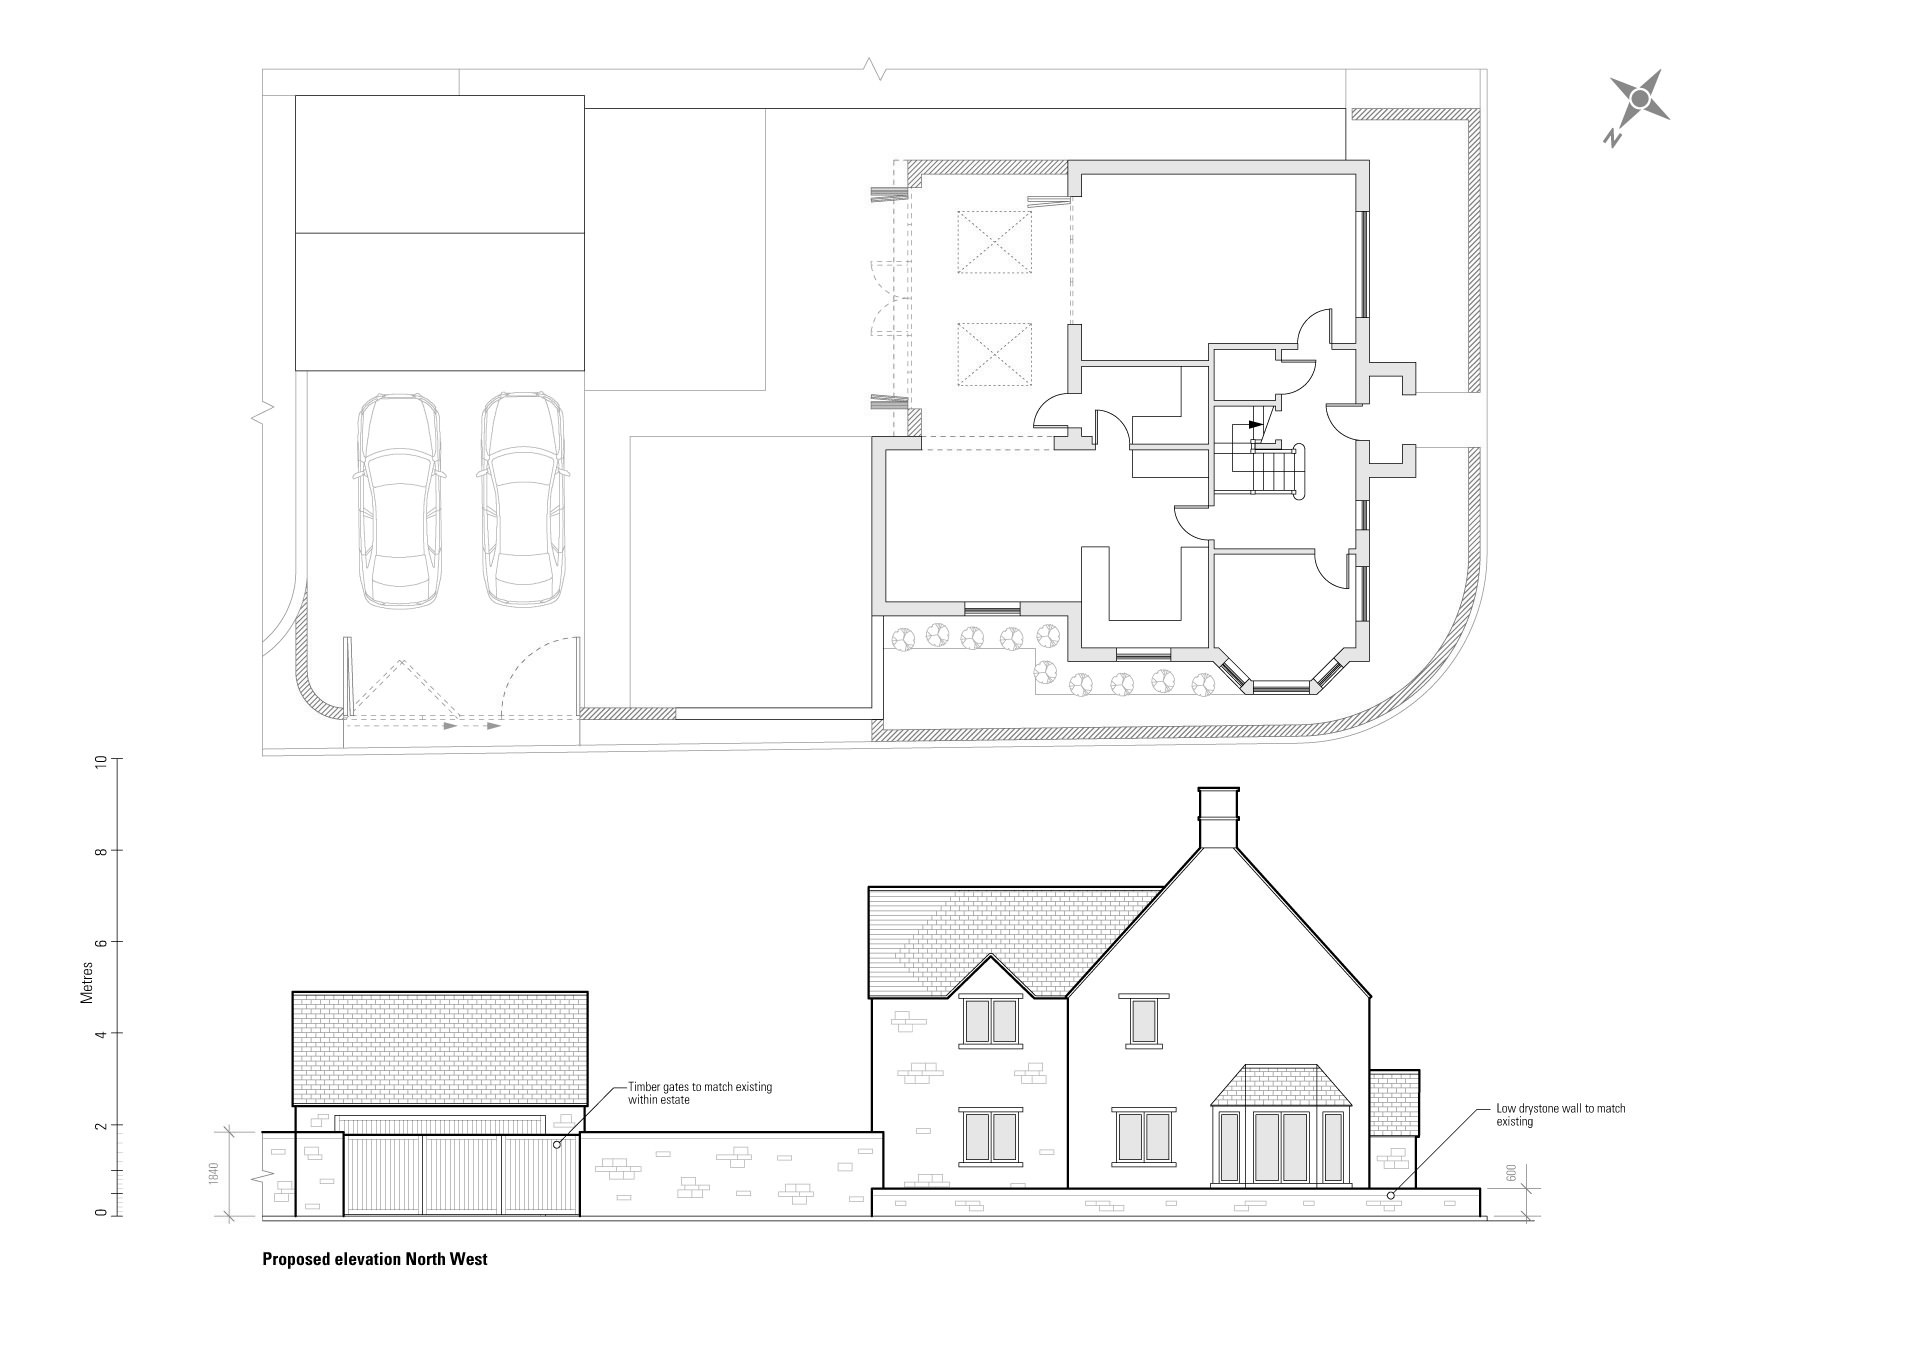 12 141 08A NW Elevation Proposed.jpg